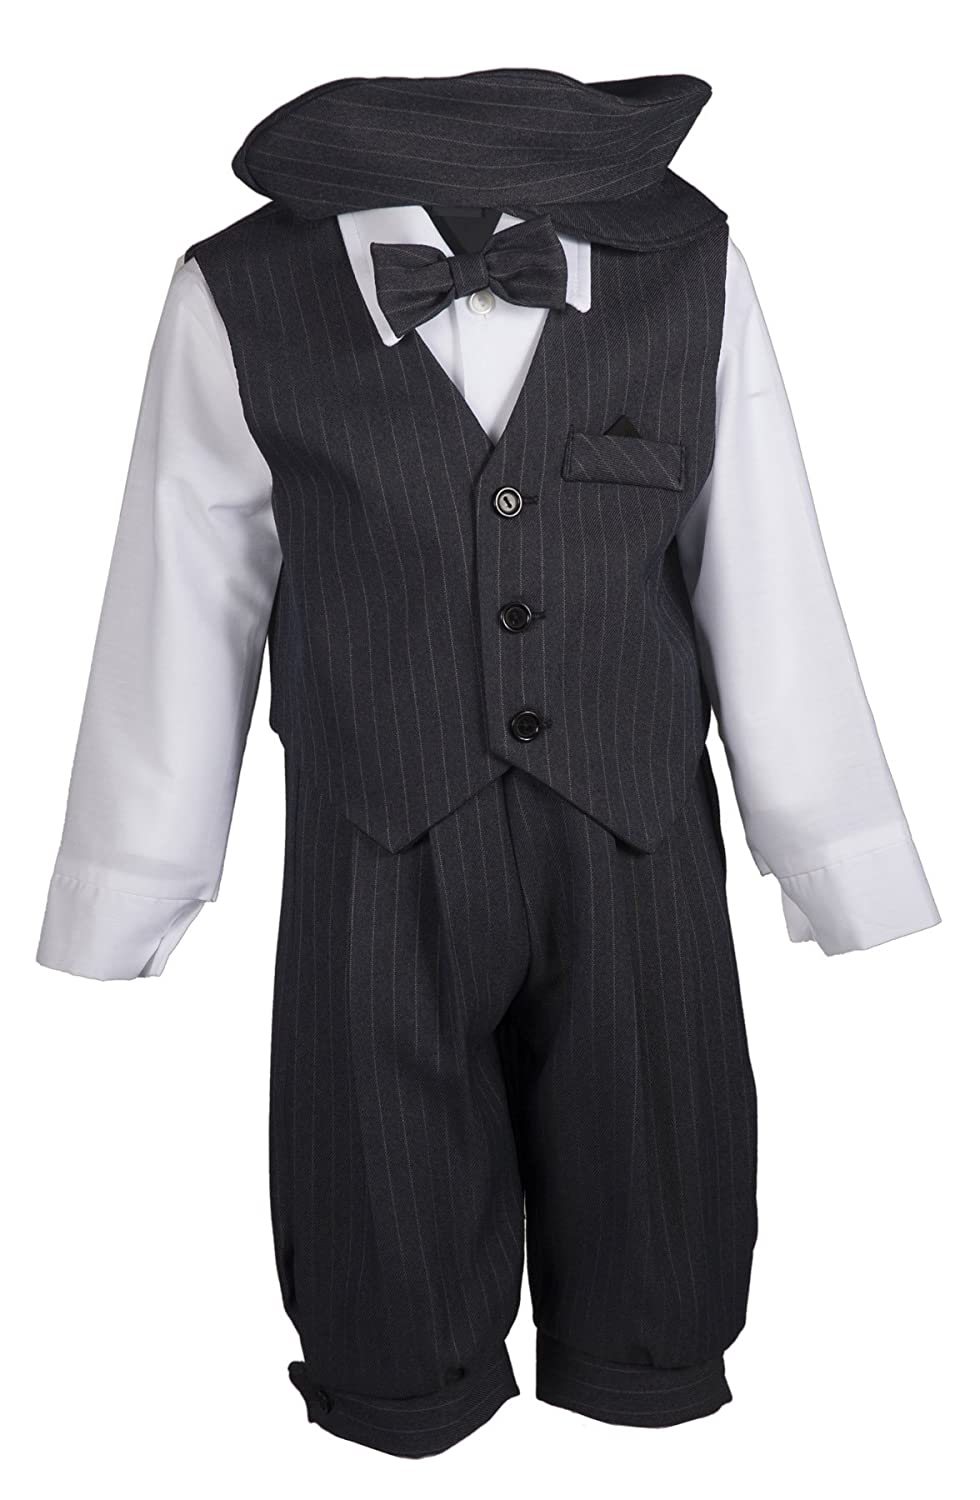 1940s Children's Clothing: Girls, Boys, Baby, Toddler Boys Grey Pinstripe Knicker Set with Vest in Baby Toddler & Boys Sizes $37.95 AT vintagedancer.com